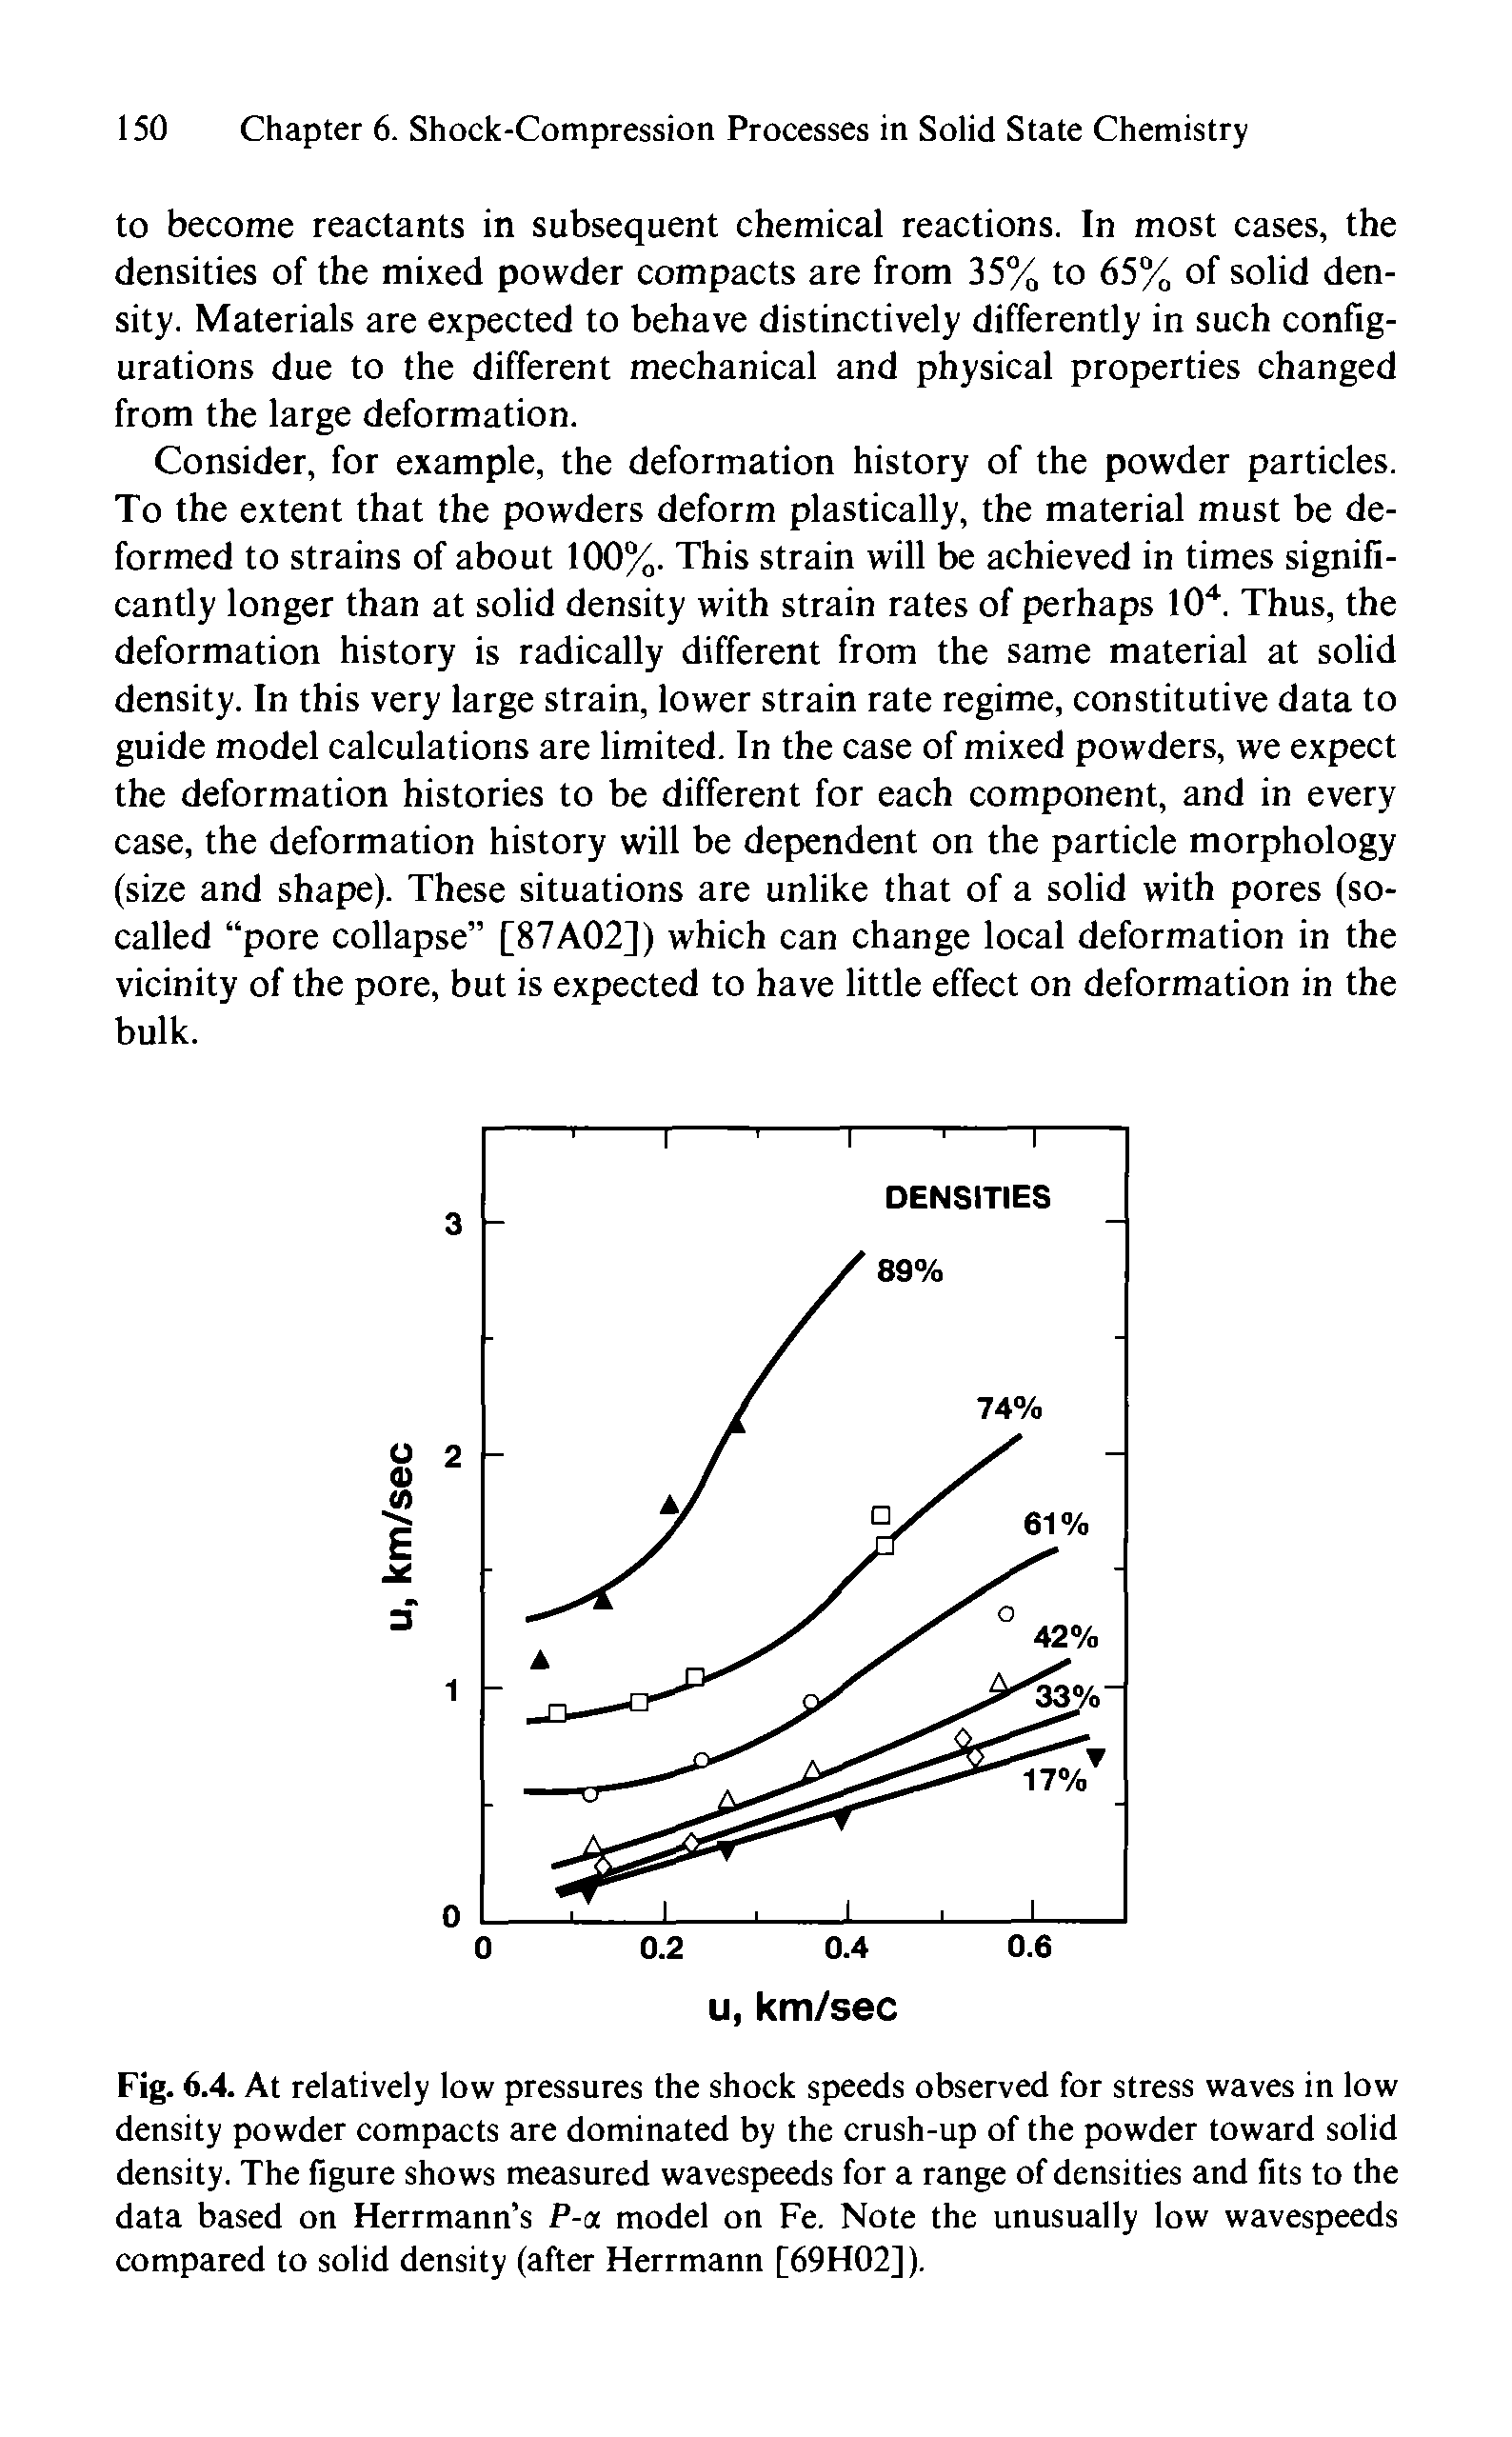 Fig. 6.4. At relatively low pressures the shock speeds observed for stress waves in low density powder compacts are dominated by the crush-up of the powder toward solid density. The figure shows measured wavespeeds for a range of densities and fits to the data based on Herrmann s P-a model on Fe. Note the unusually low wavespeeds compared to solid density (after Herrmann [69H02]).